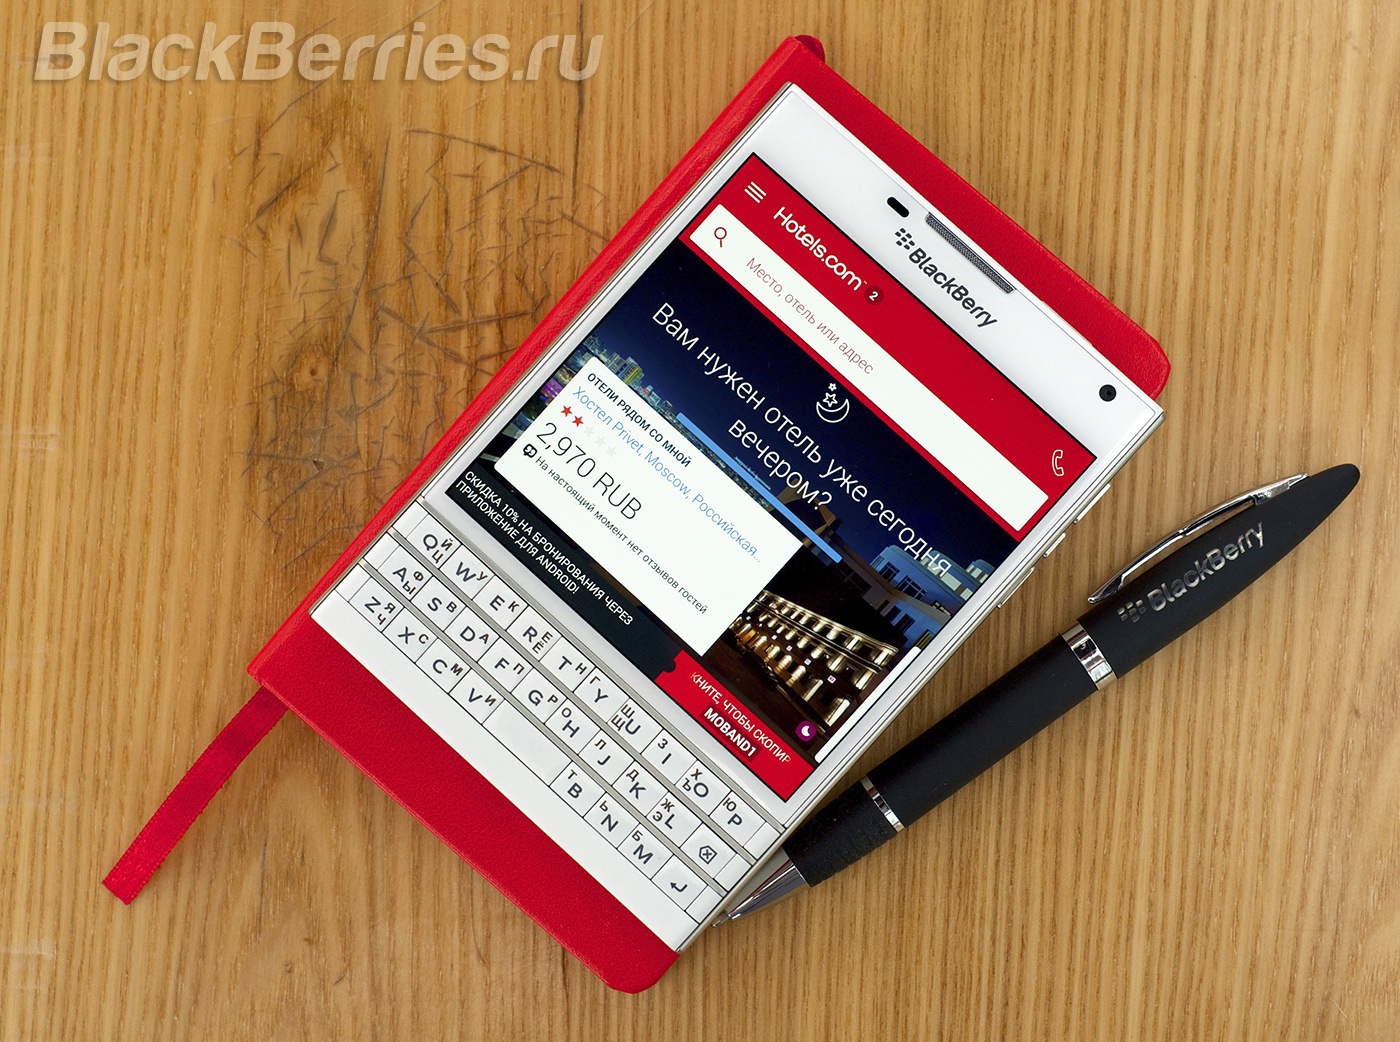 BlackBerry-Passport-App-23-05-08